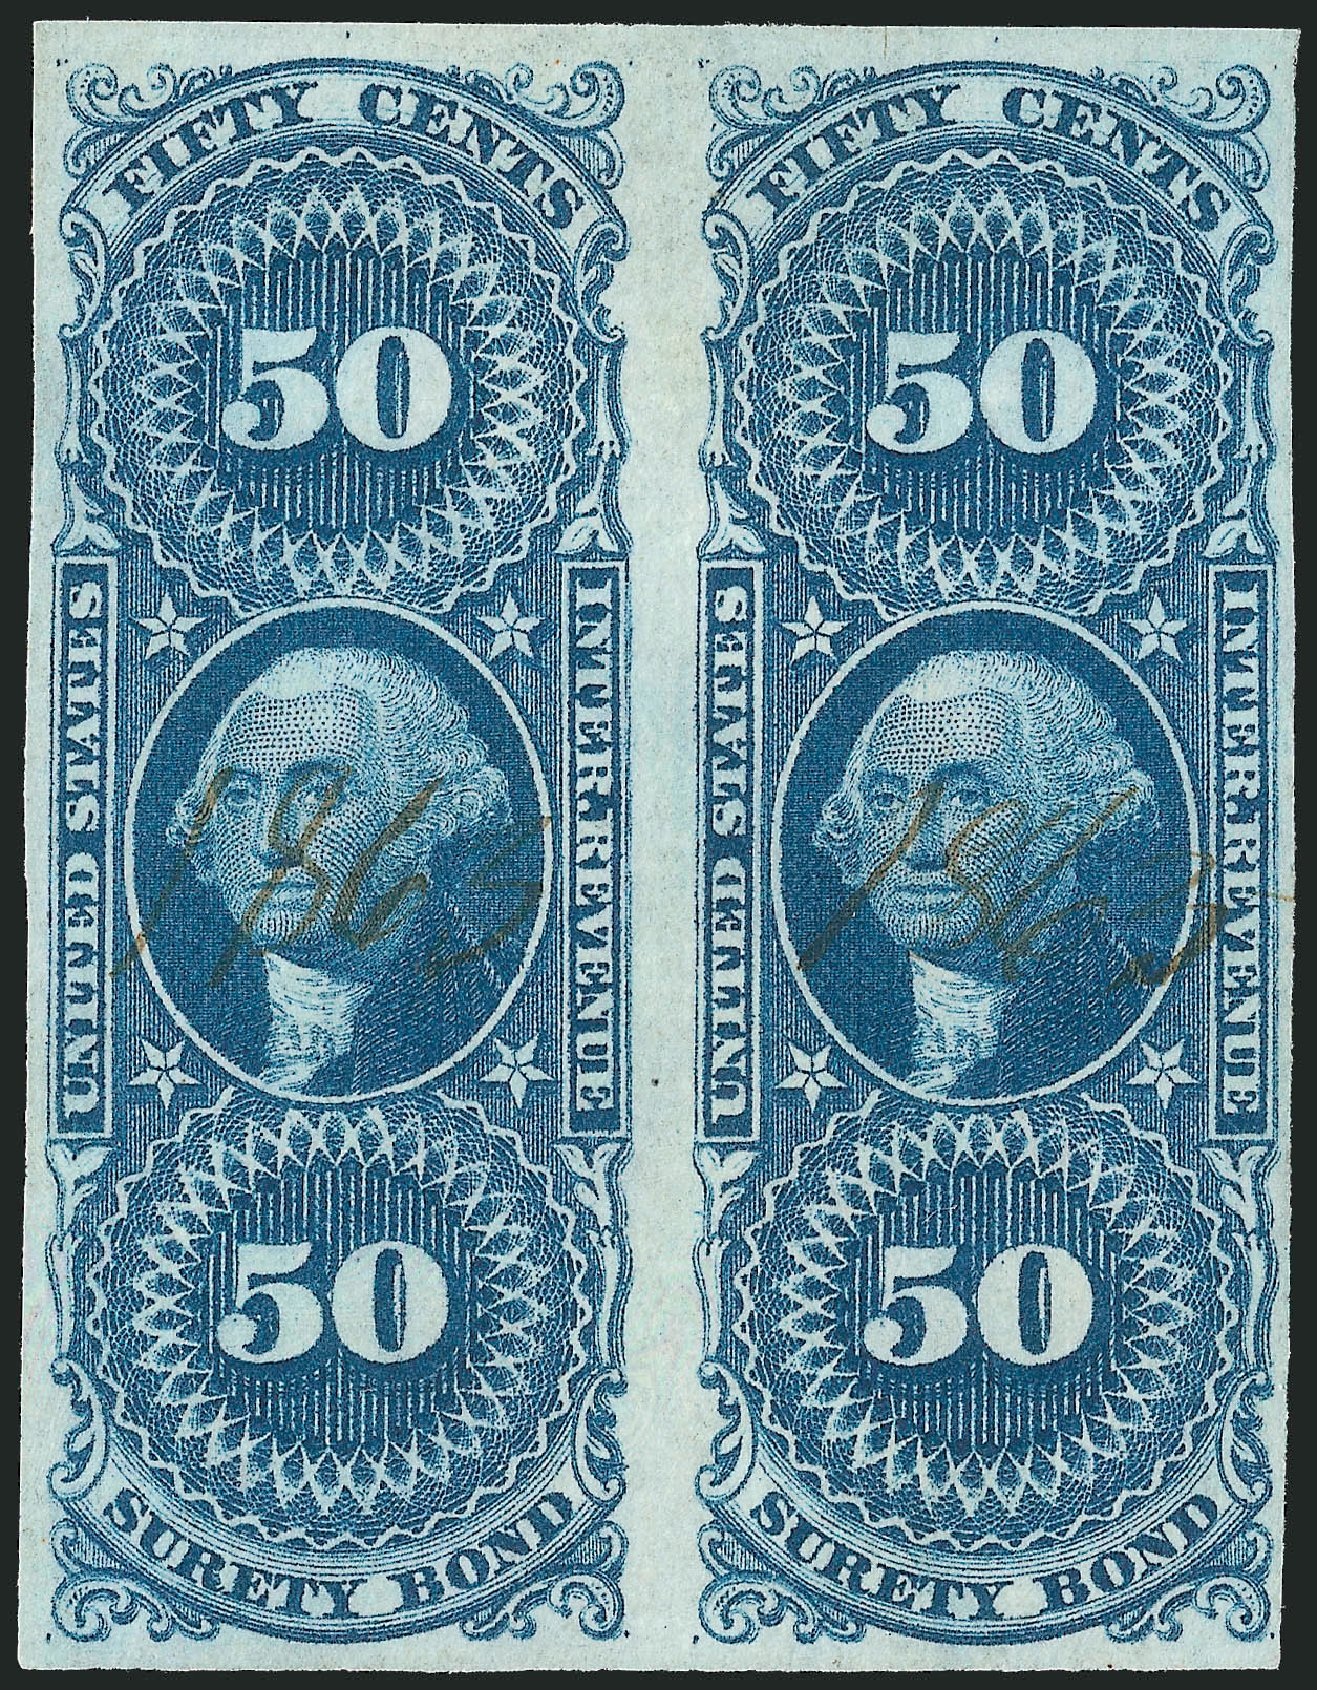 US Stamps Prices Scott Catalog # R63 - 50c 1862 Revenue Surety Bond. Robert Siegel Auction Galleries, Dec 2014, Sale 1089, Lot 231